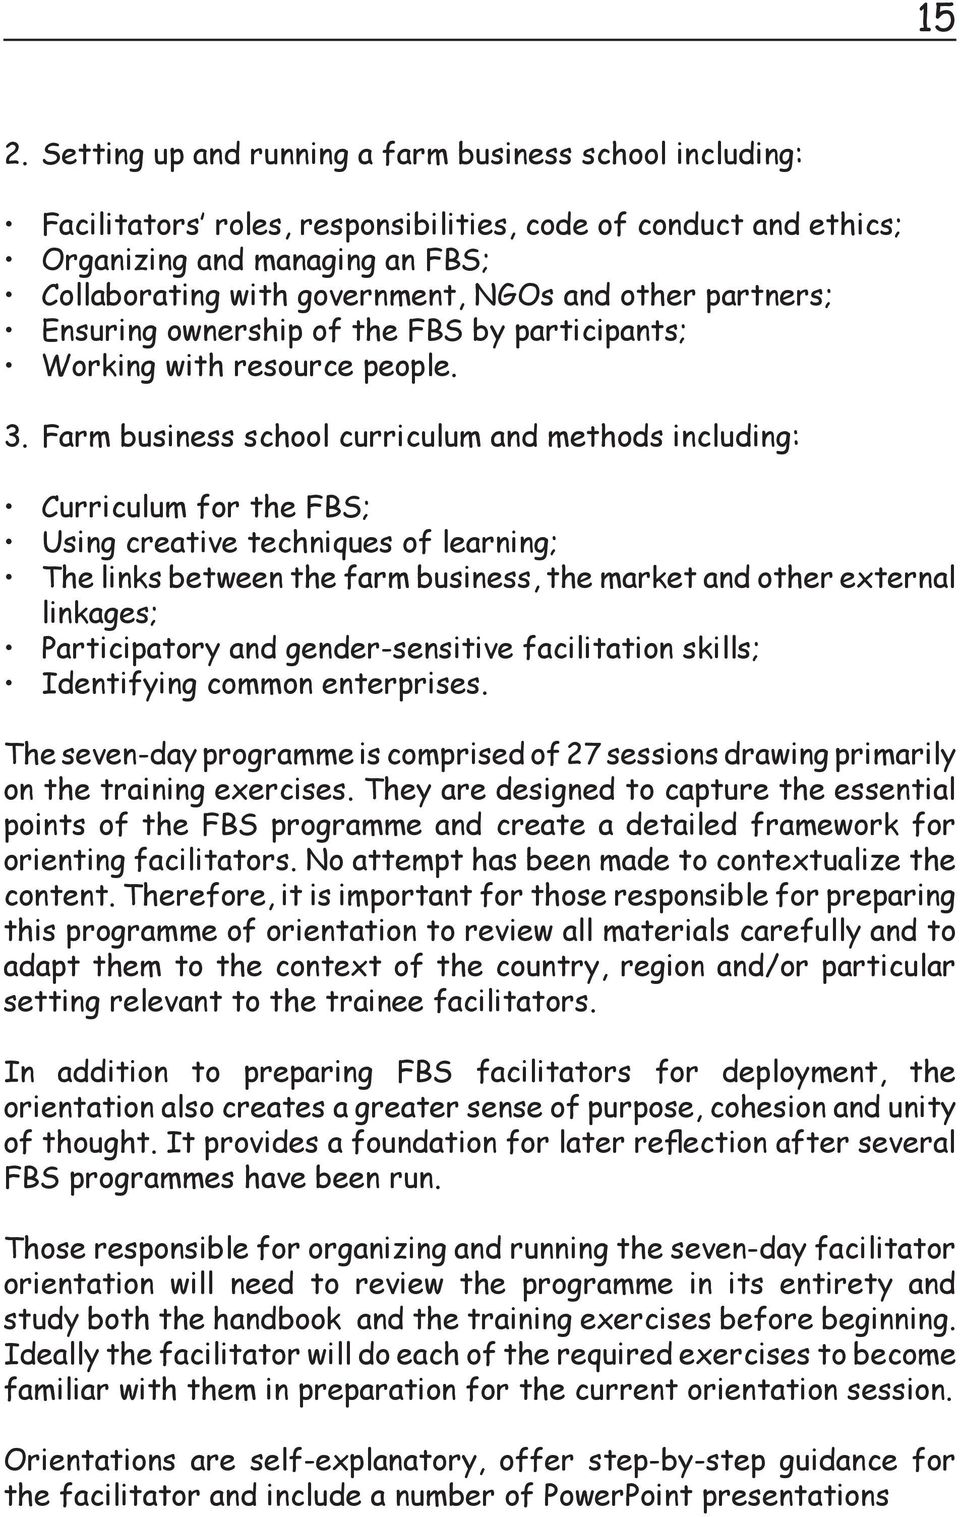 Farm business school curriculum and methods including: Curriculum for the FBS; Using creative techniques of learning; The links between the farm business, the market and other external linkages;